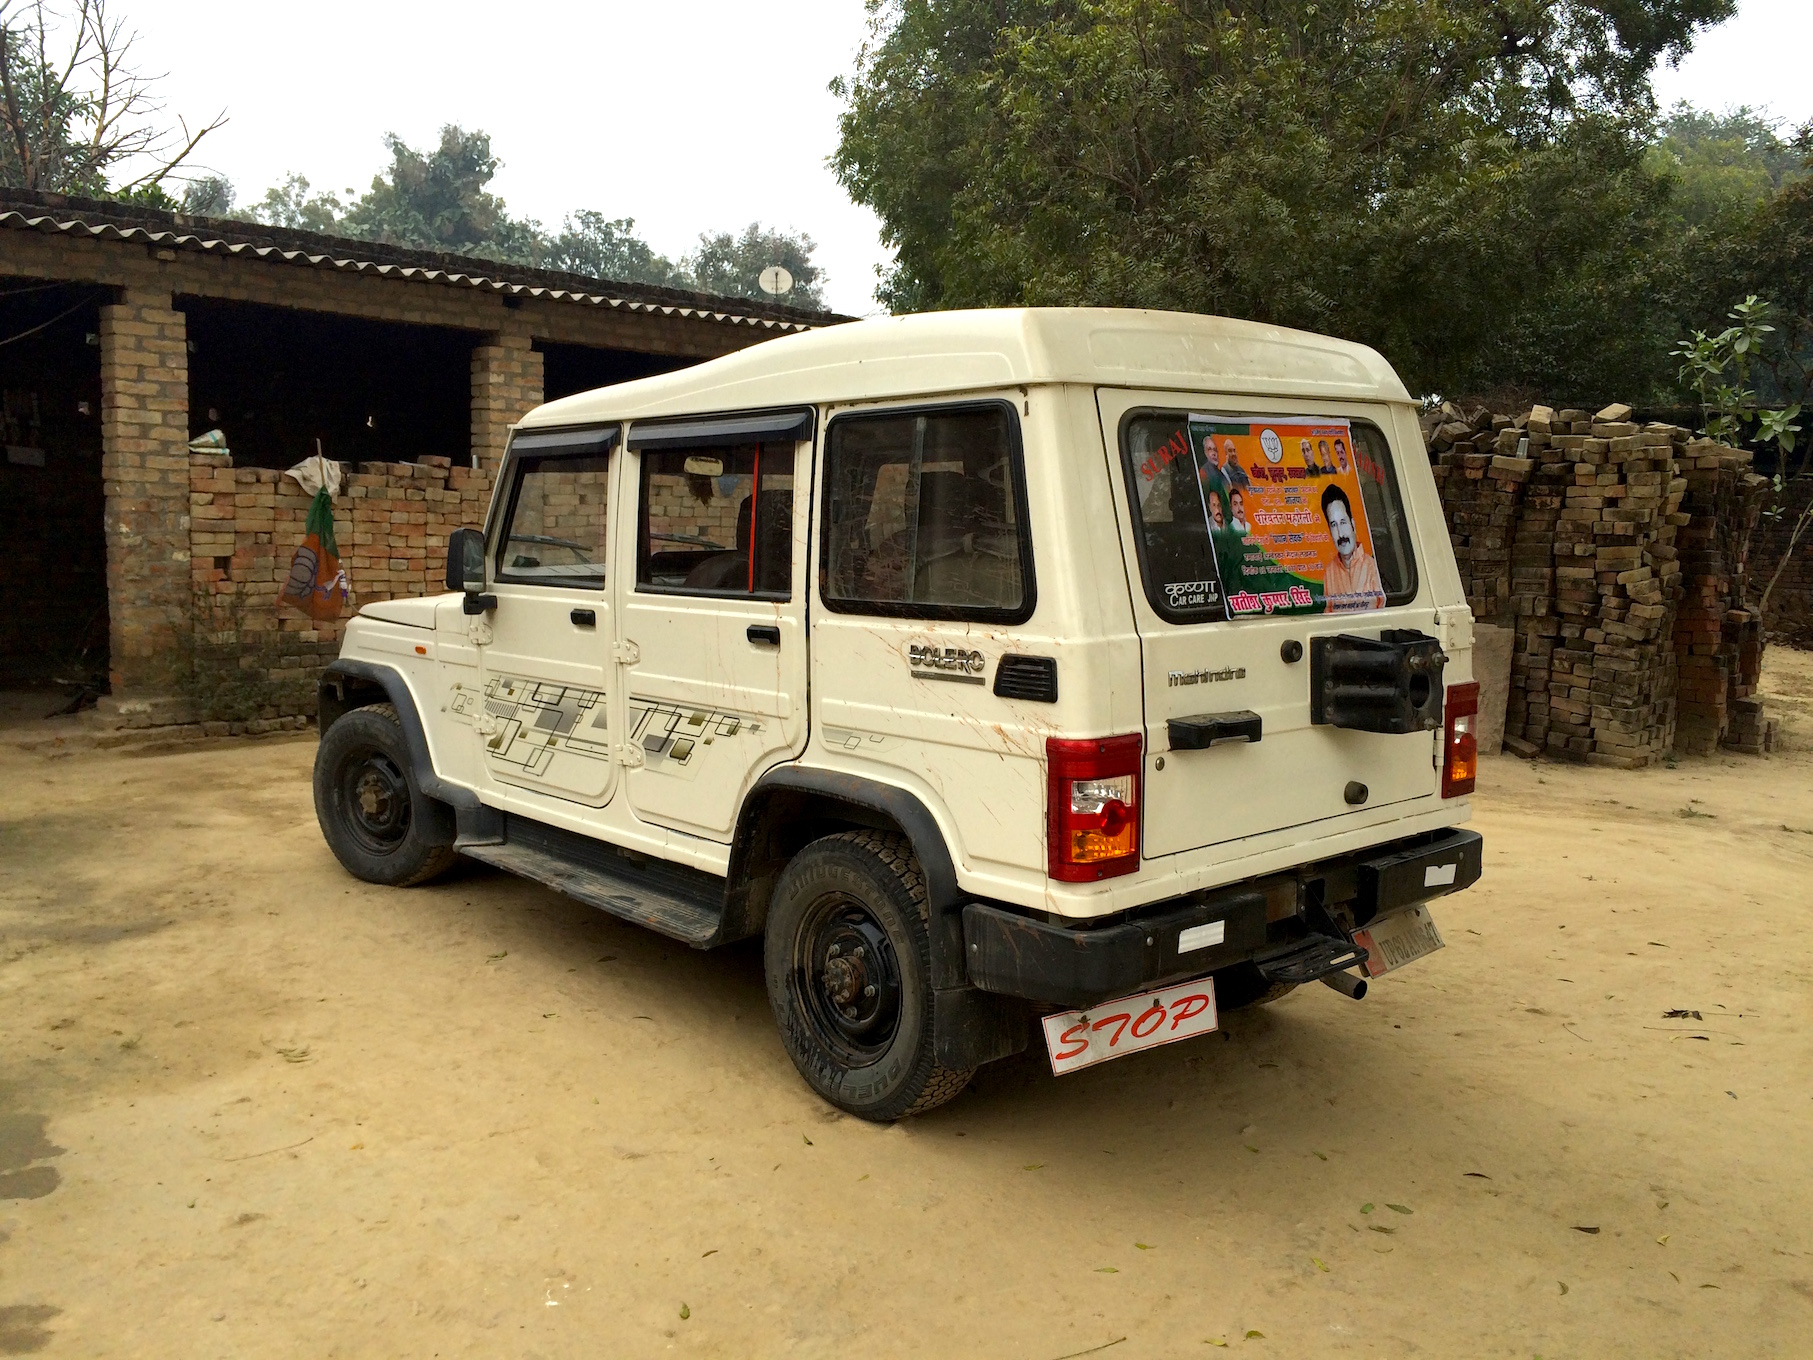 A day after the expedition, the Bolero was still parked in the Brahmin quarter.